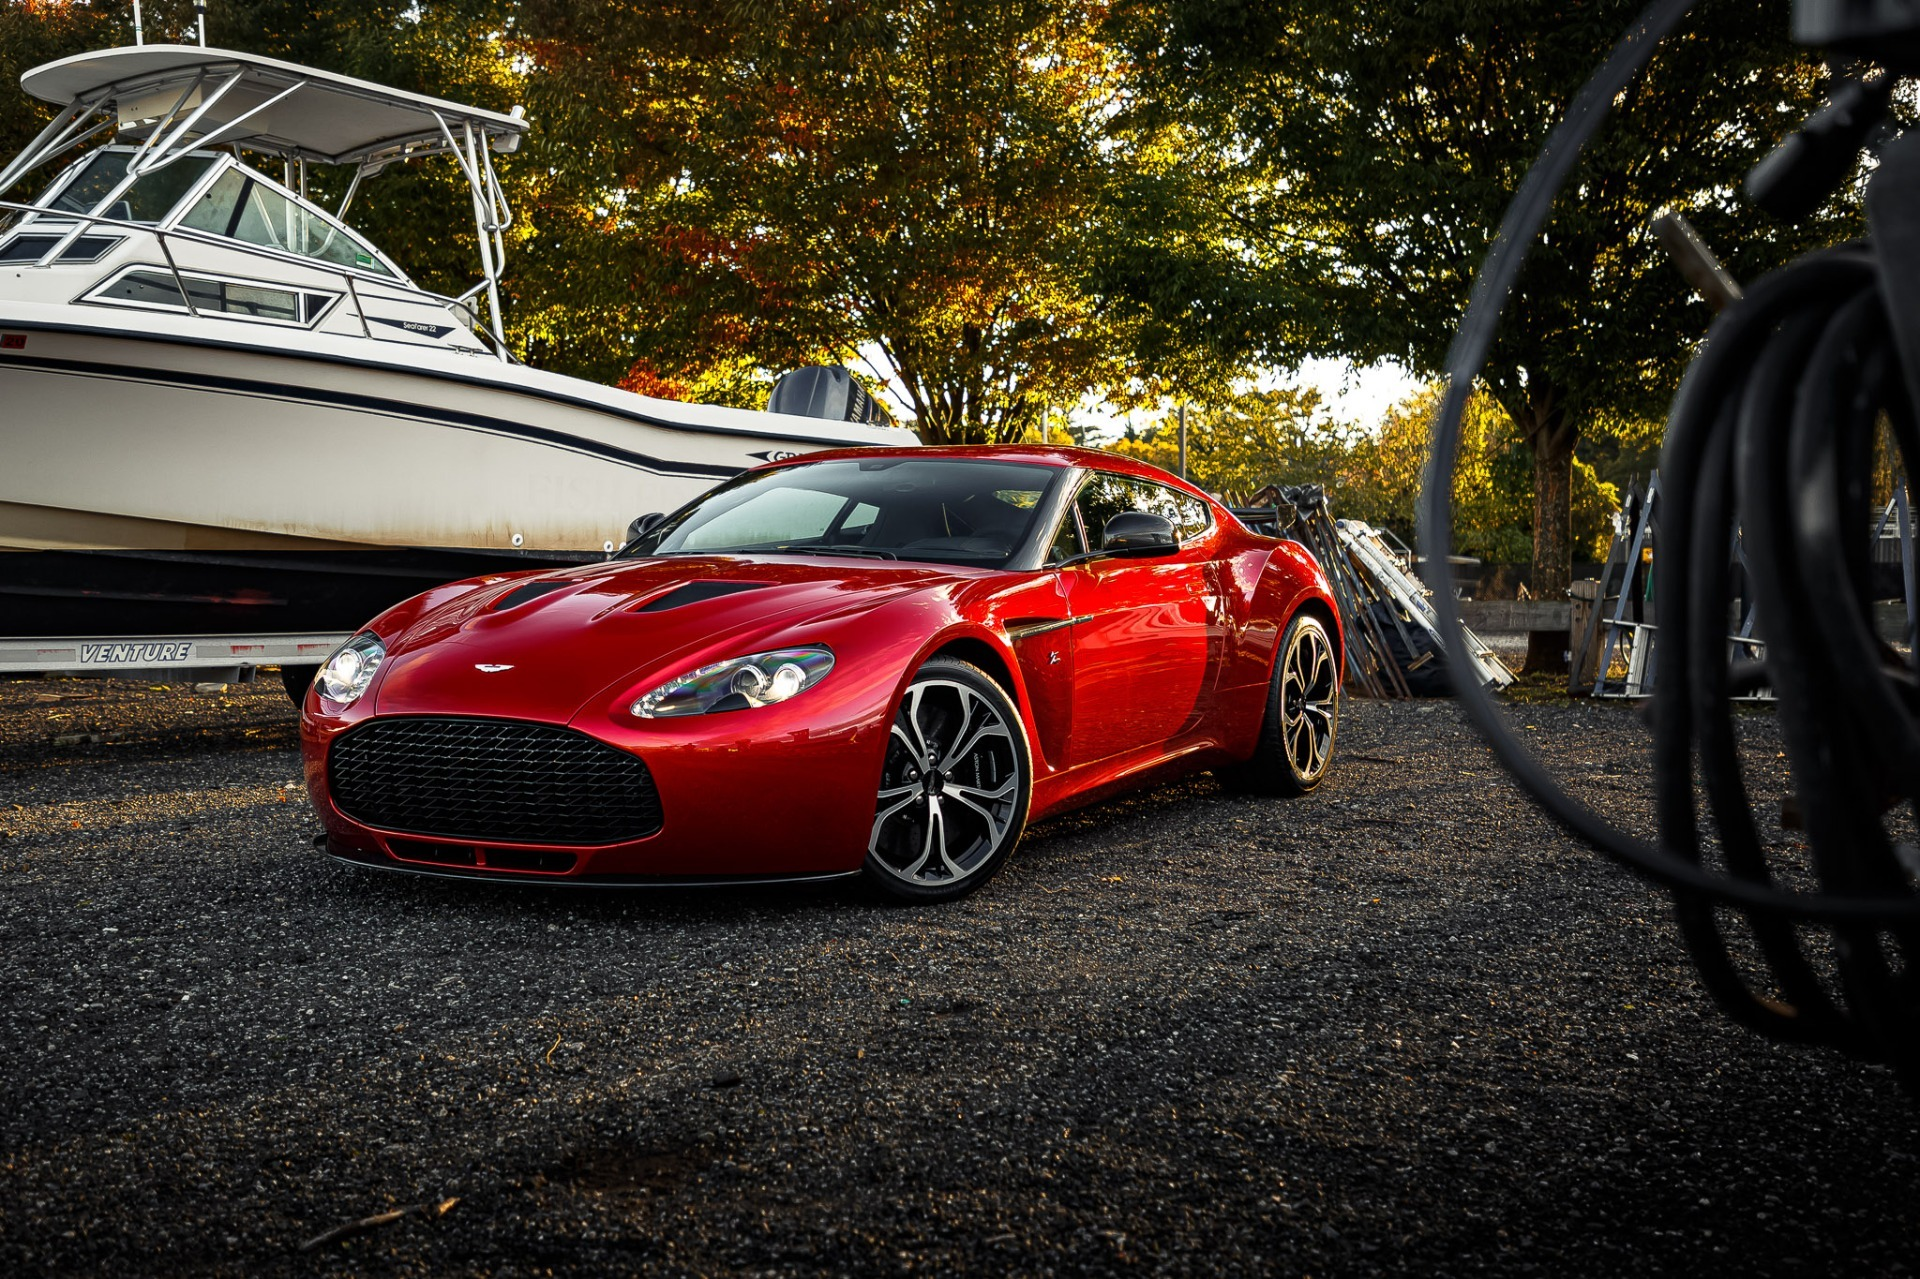 Used 2013 Aston Martin V12 Zagato Coupe For Sale In Westport, CT 3181_p30